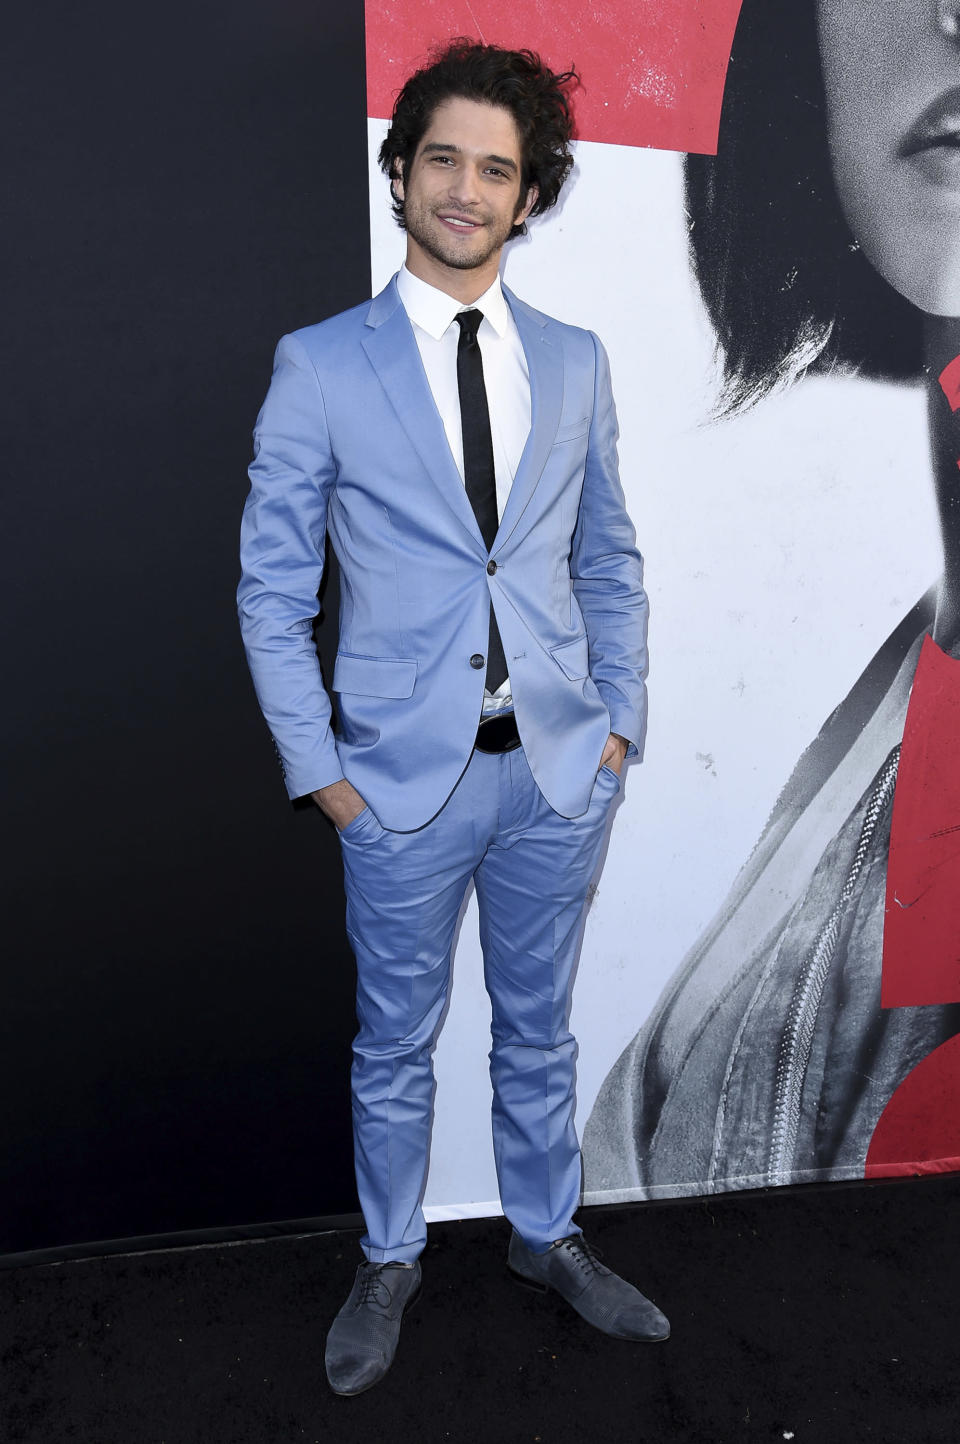 """FILE - Tyler Posey attends the premiere of """"Truth or Dare"""" on April 12, 2018, in Los Angeles. Posey turns 30 on Oct. 18. (Photo by Richard Shotwell/Invision/AP, File)"""